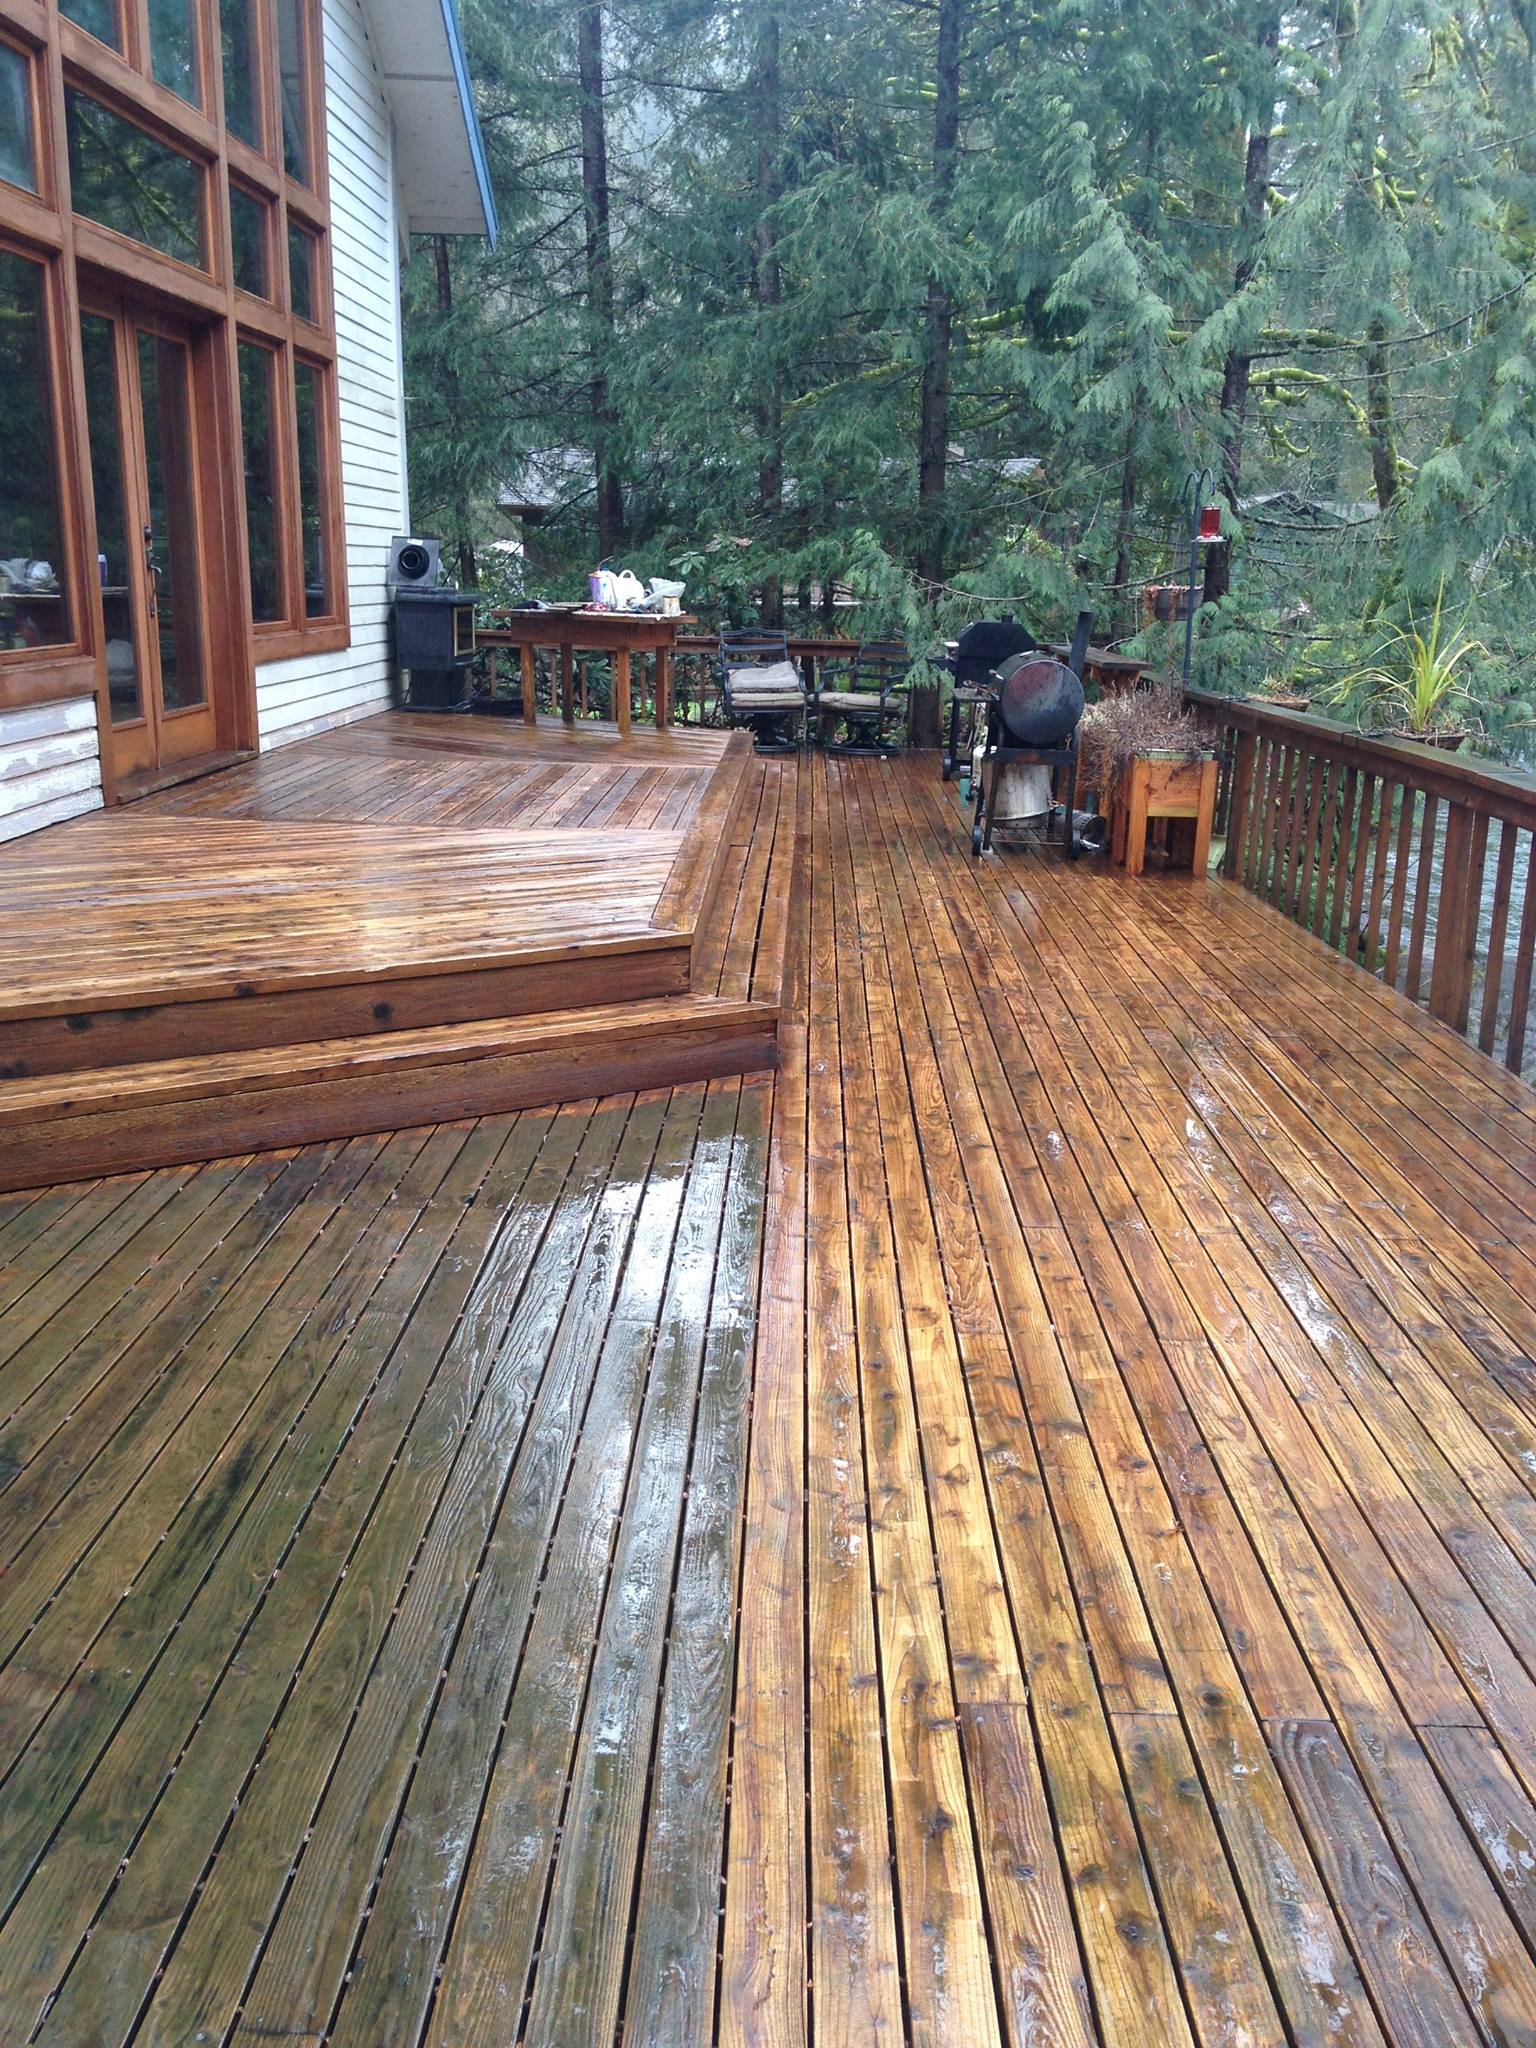 GutterSuckers, Inc after deck cleaning. We offer quality home improvement services at pocket friendly pricing. Talk to us today.